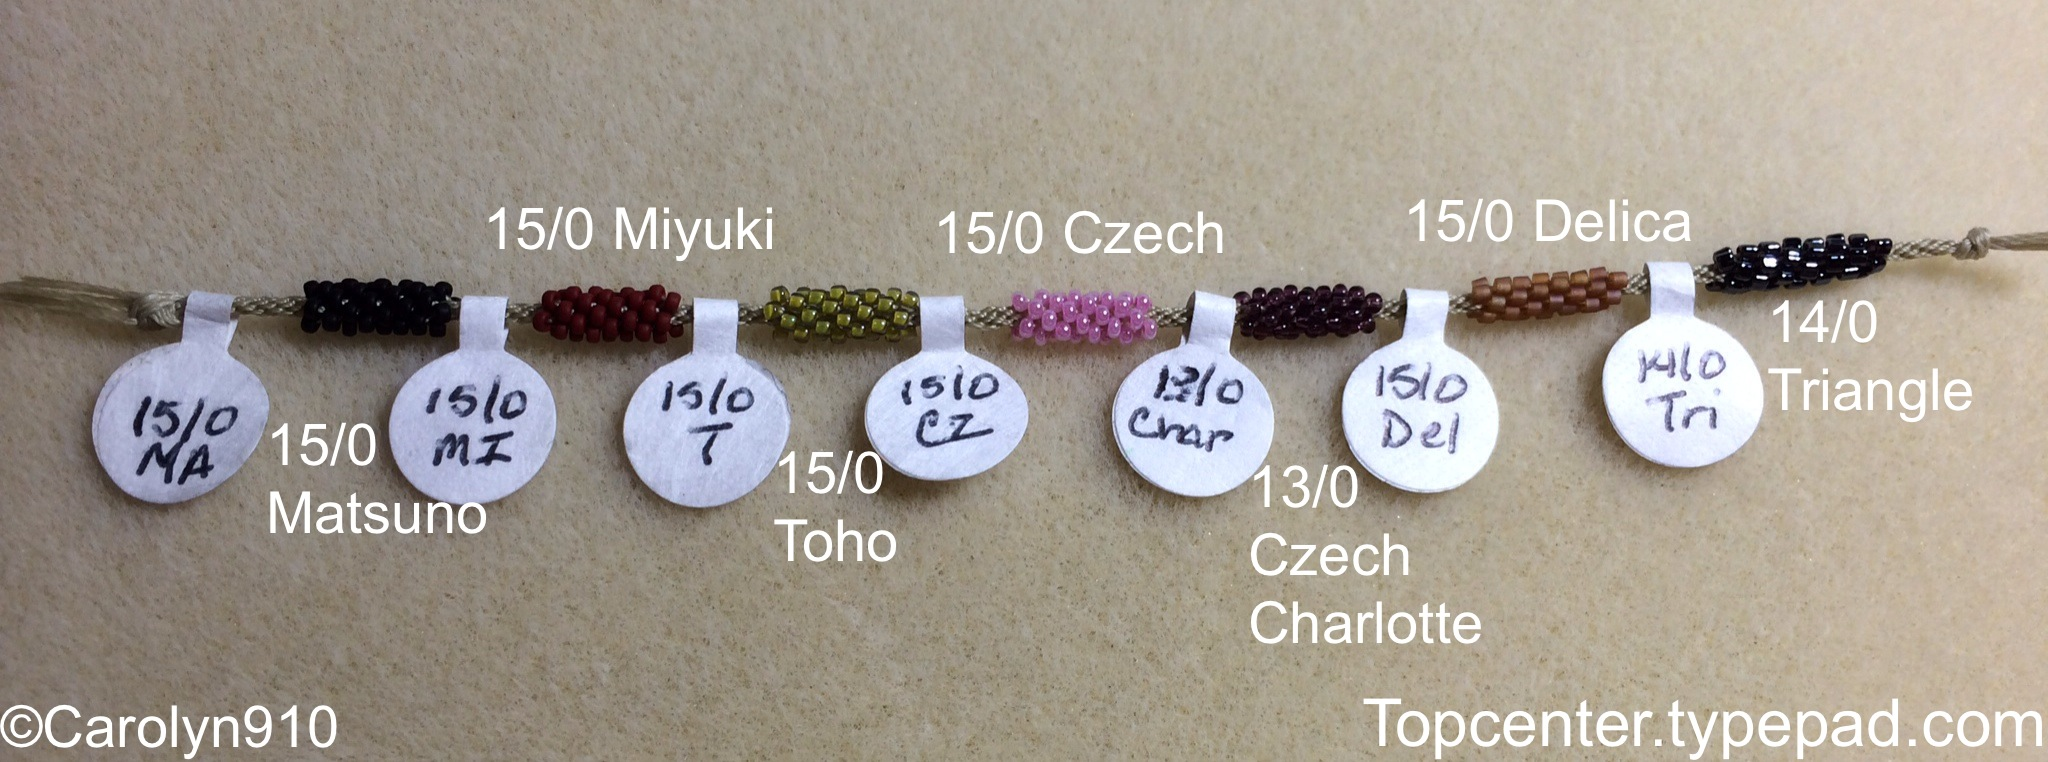 Beads for Braiders Info-torial #4: Size 15/0 seed beads